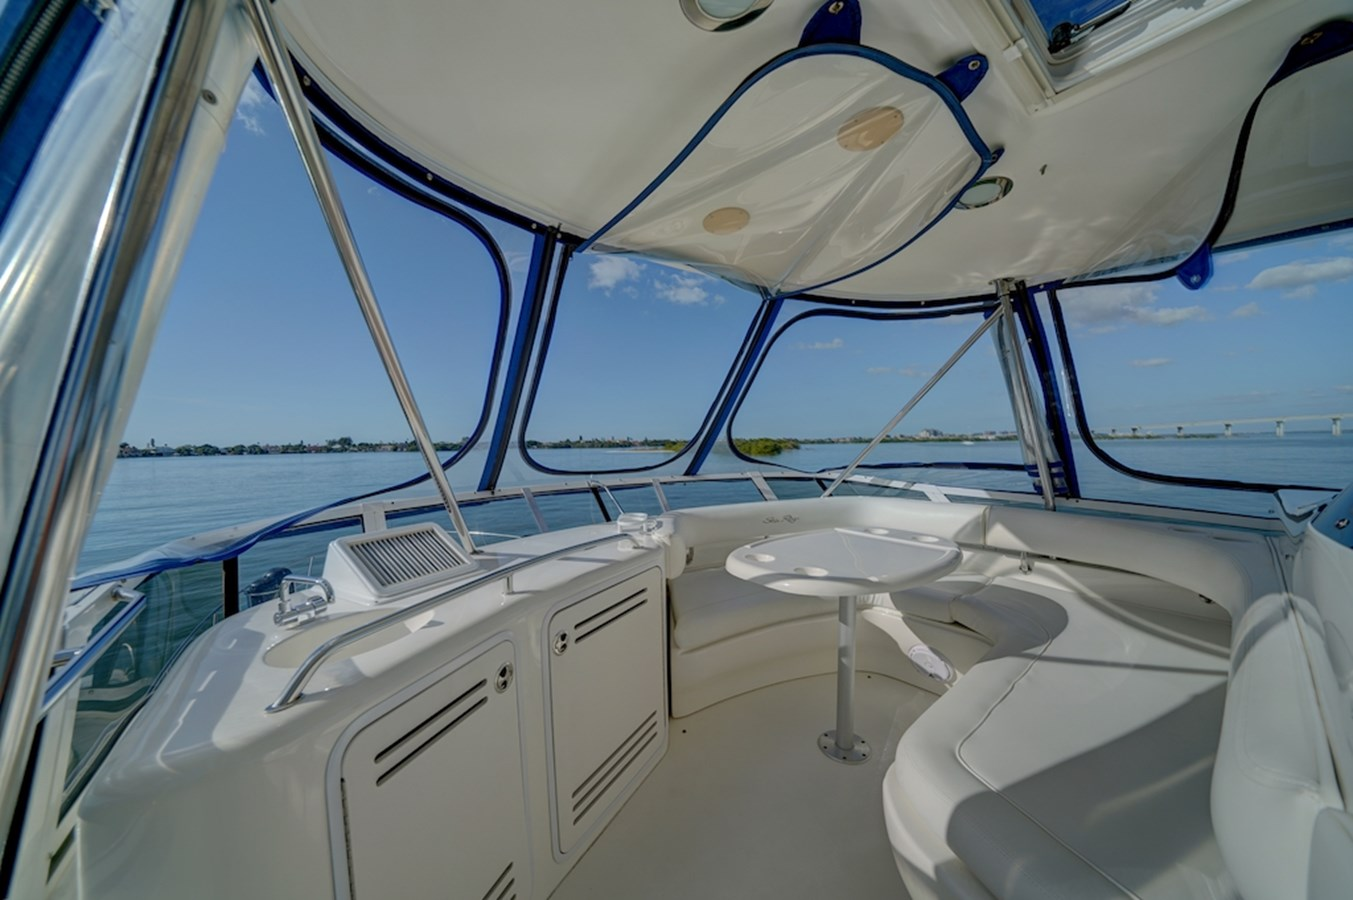 50 ft. Sea Ray – Luxury Power Yacht - Front Seat over the bridge